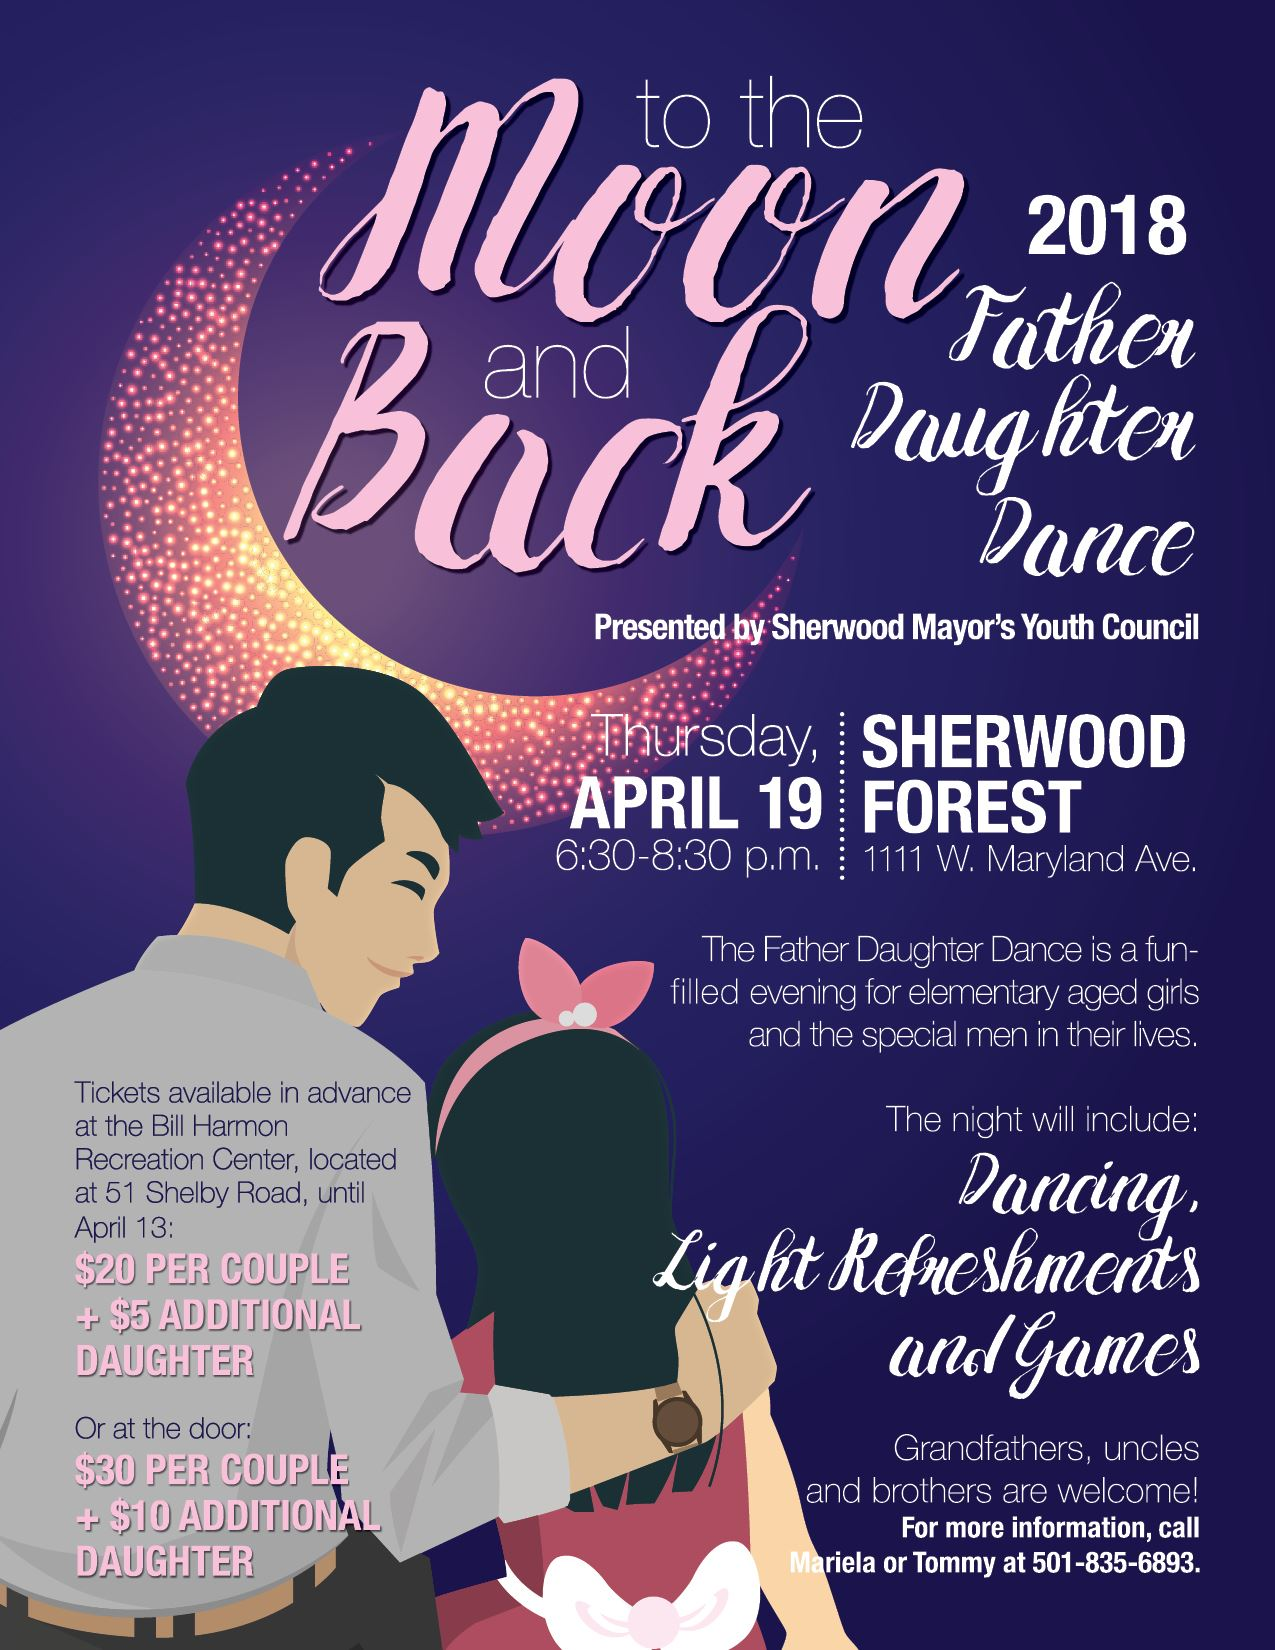 Image of Flyer for To The Moon and Back Father Daughter Dance